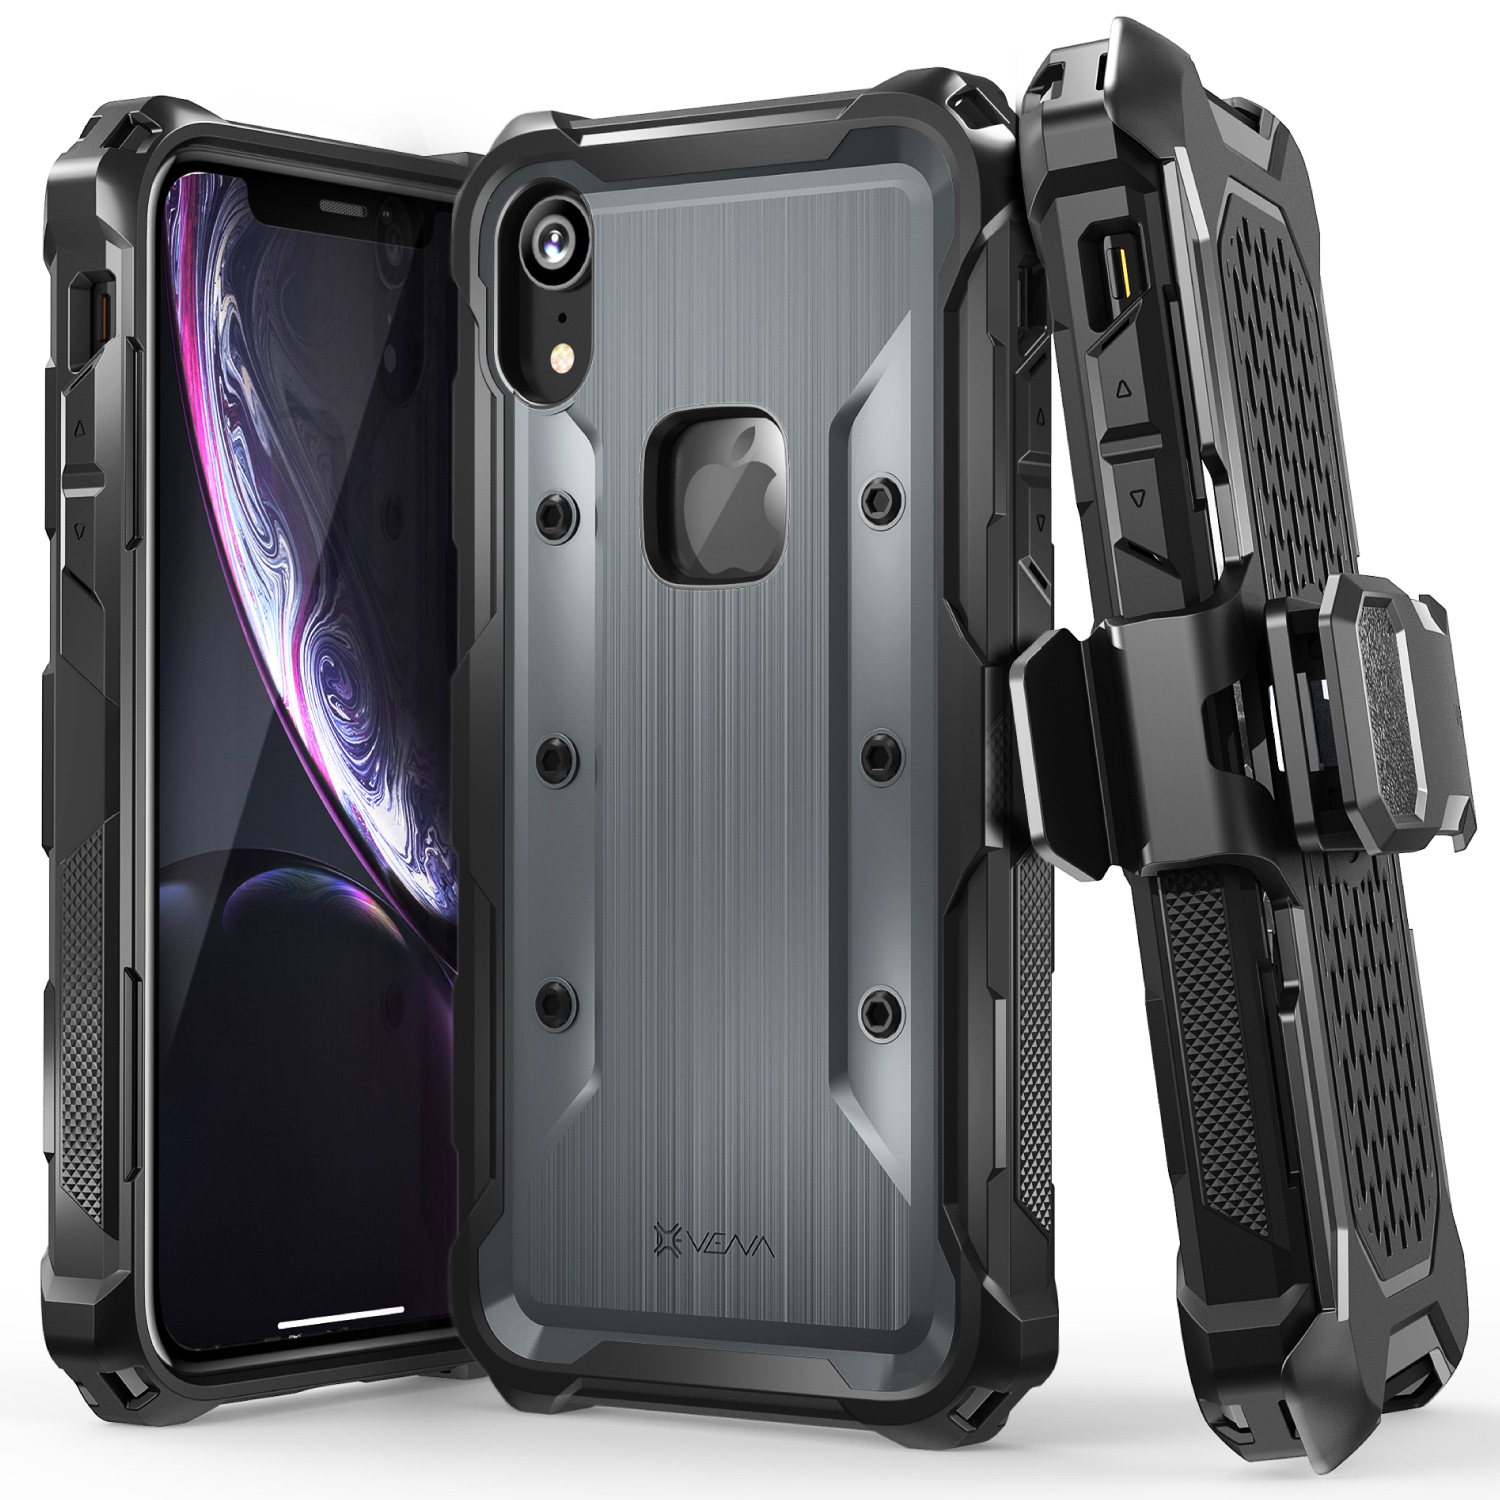 Vena iPhone XR Case, [vArmor] Rugged Holster Case for iPhone XR (Space Gray/Black)